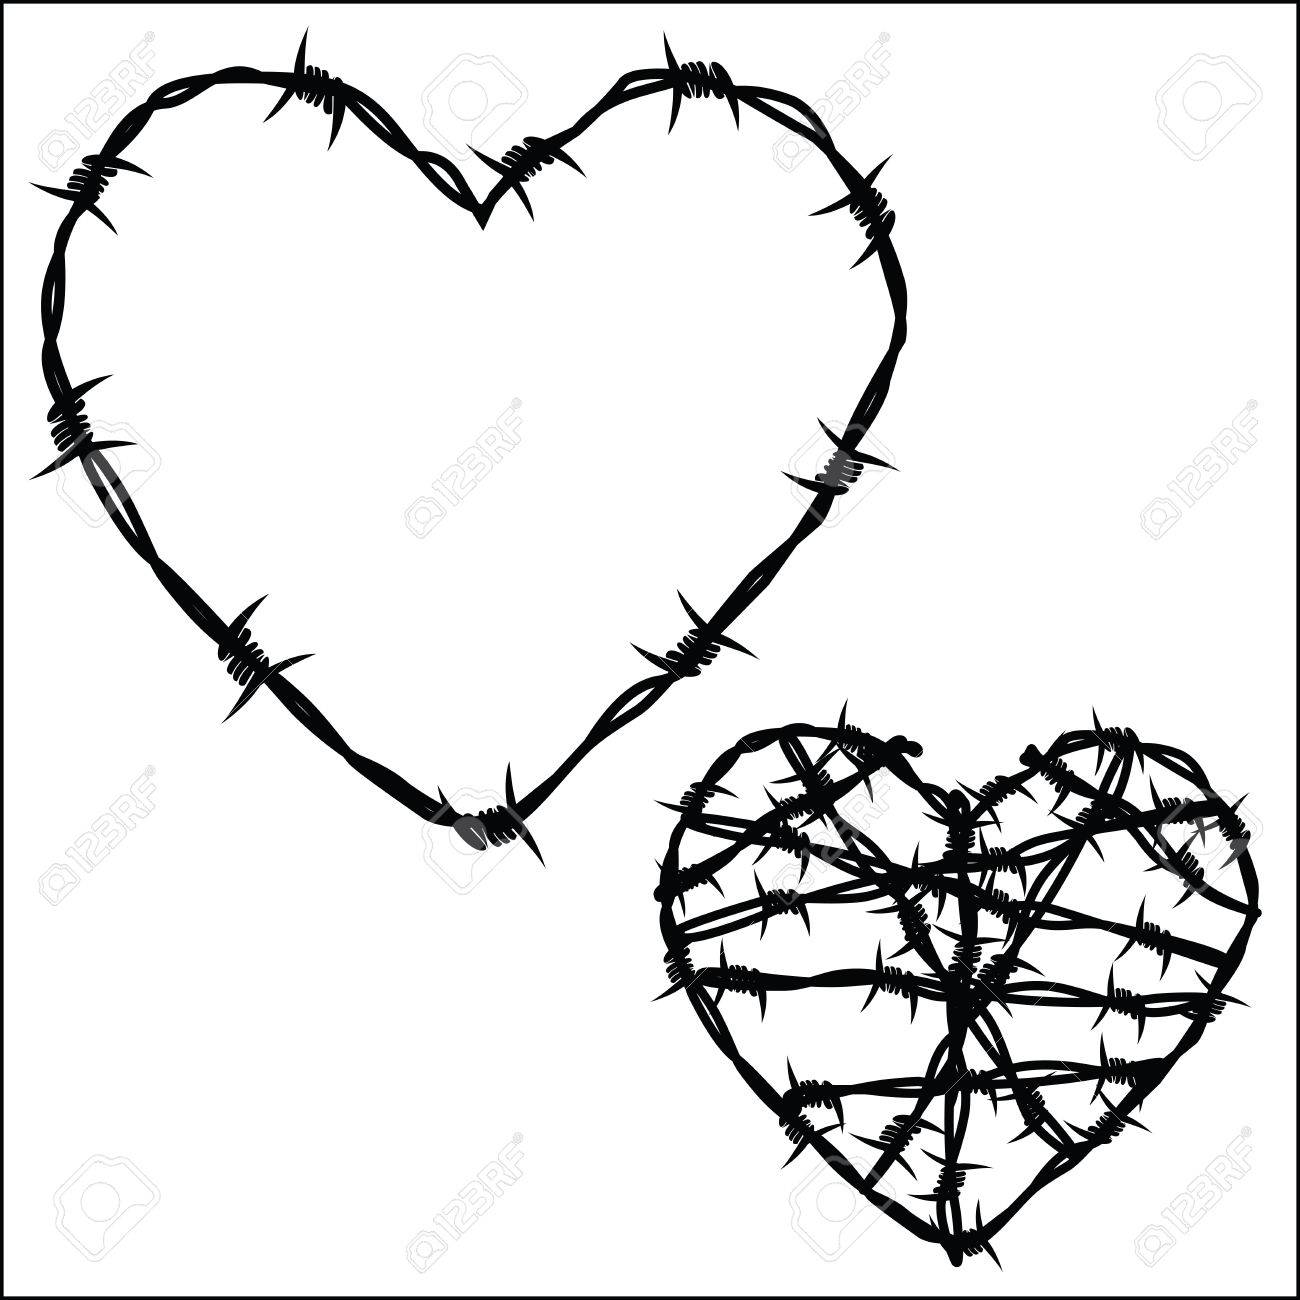 Barbed Wire Heart Clip Art Center Pad2pad Custom Printed Circuit Board Manufacturer Mahwah Nj Of Royalty Free Cliparts Vectors And Stock Rh 123rf Com Rustic